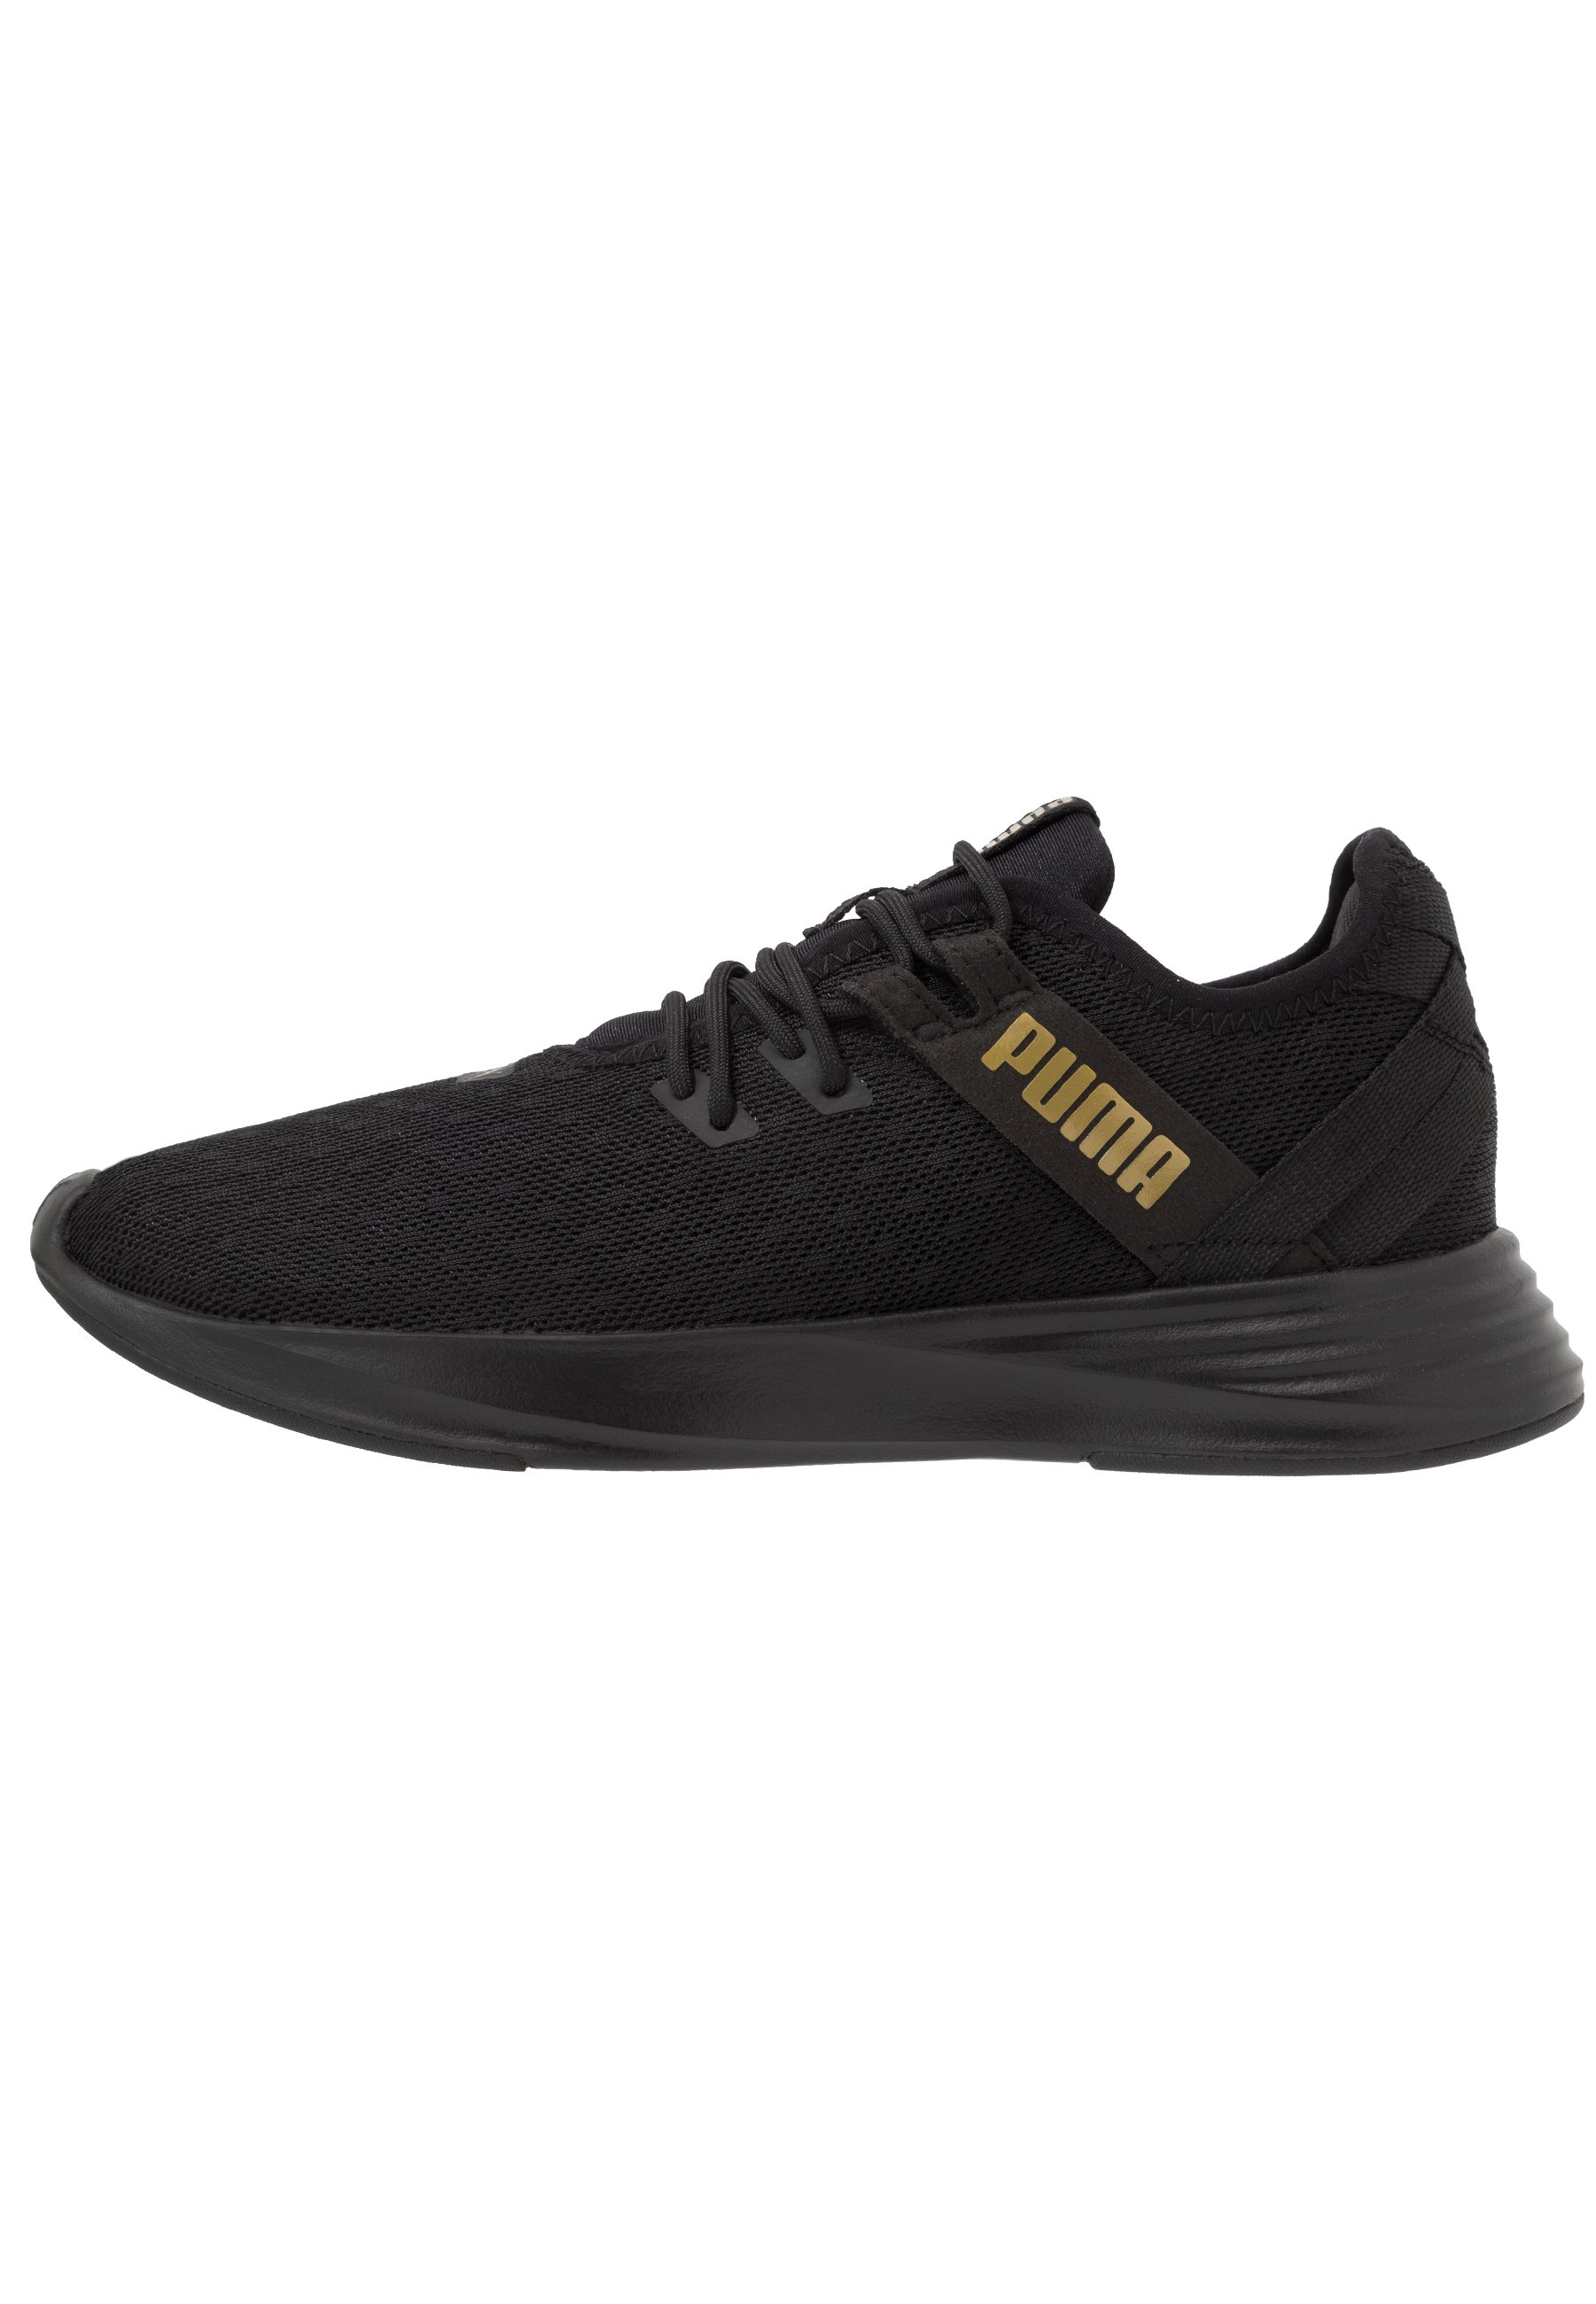 Puma ANZARUN LITE Trainings Fitnessschuh triple black